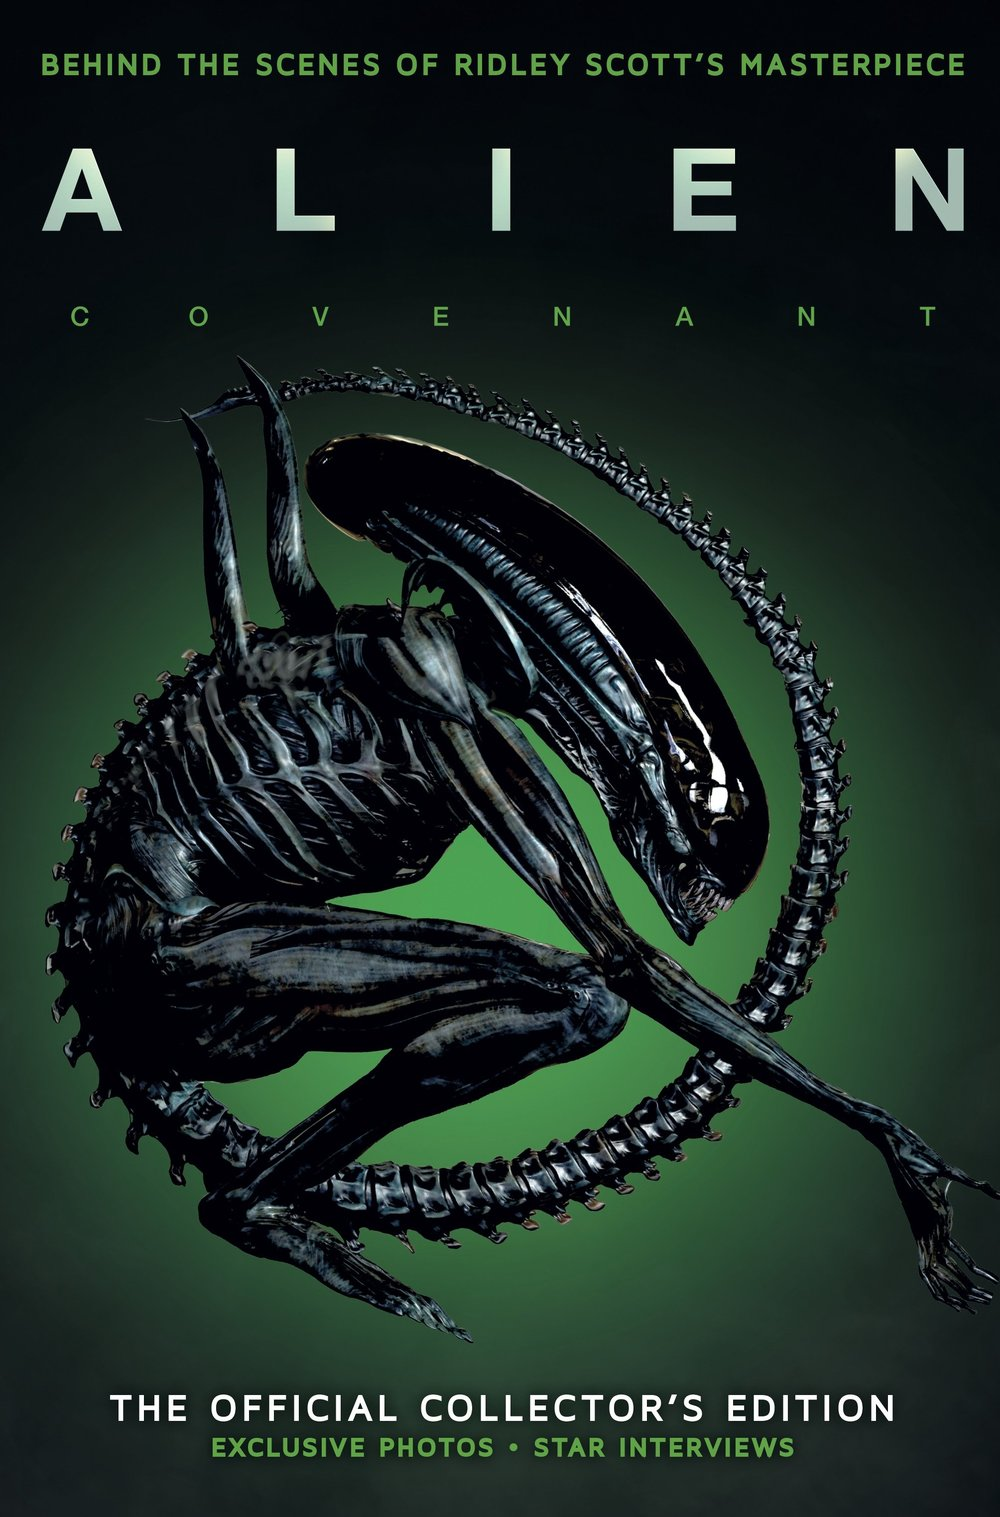 xalien--covenant-the-official-collector--s-edition-cover-102516.jpg.pagespeed.ic.ESVlFmxkh0.jpg